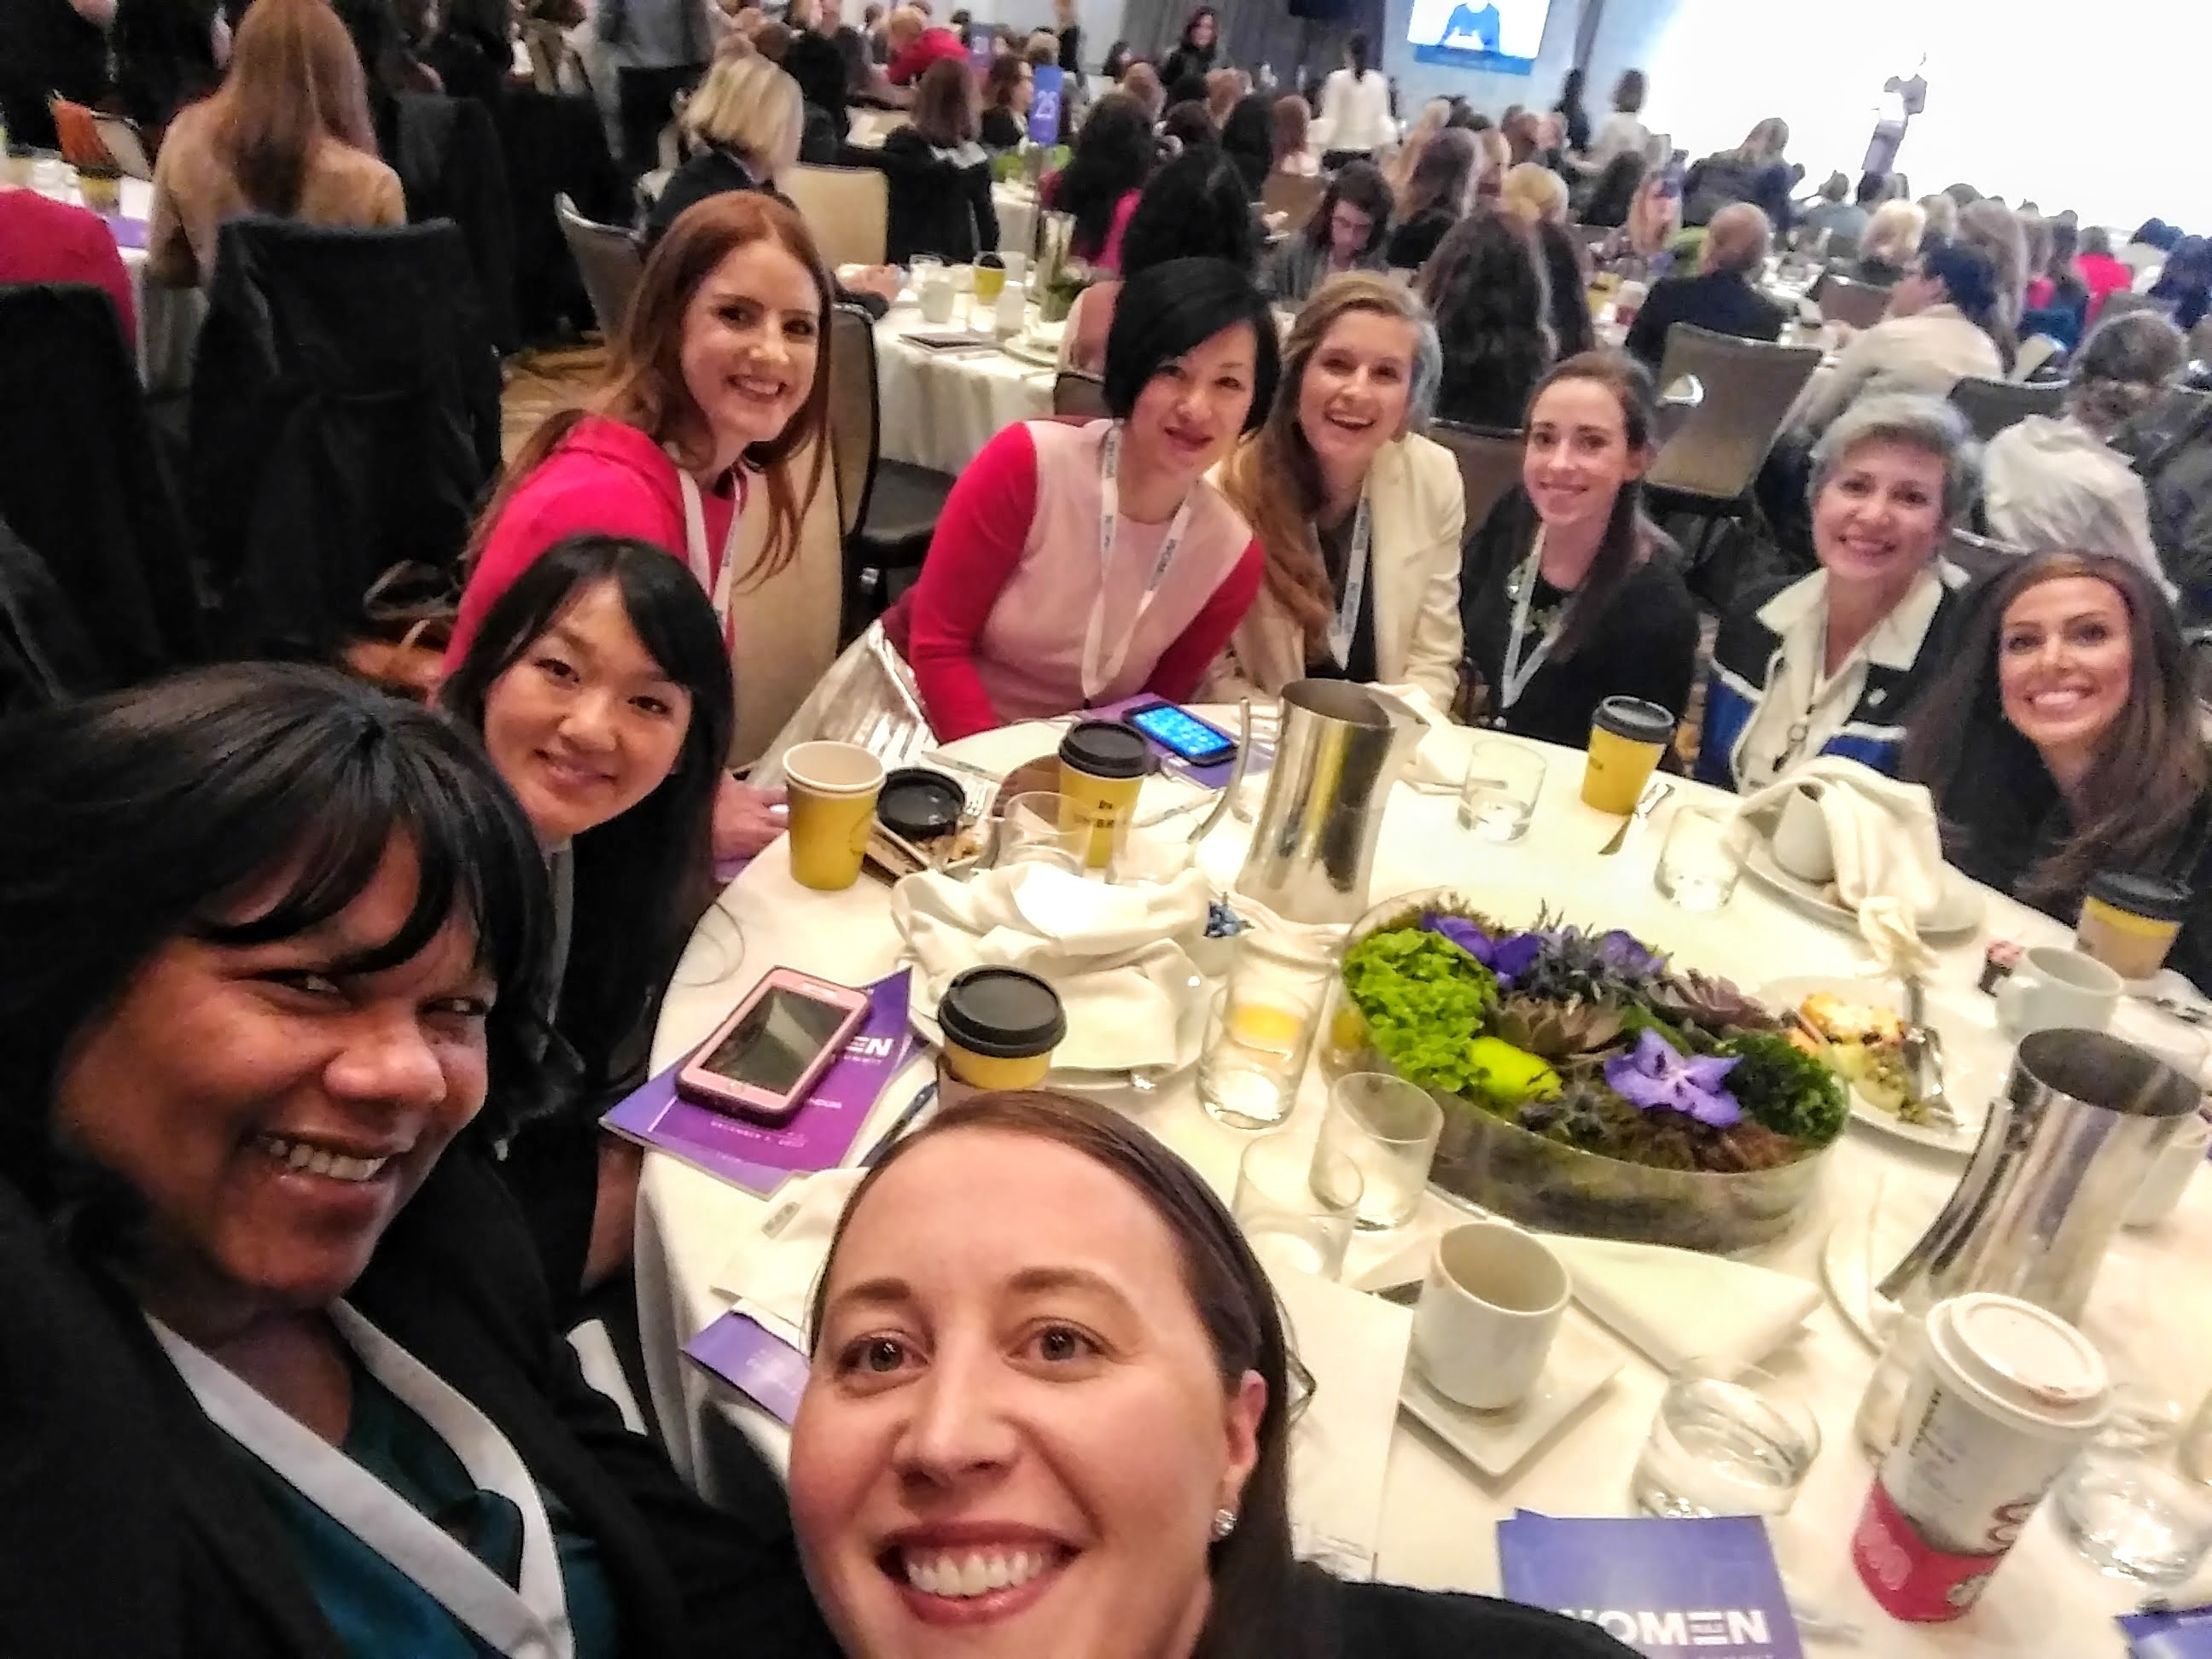 Monic Behnken, far left, takes a picture of her table during the POLITICO Women Rule Summit on Dec. 5.